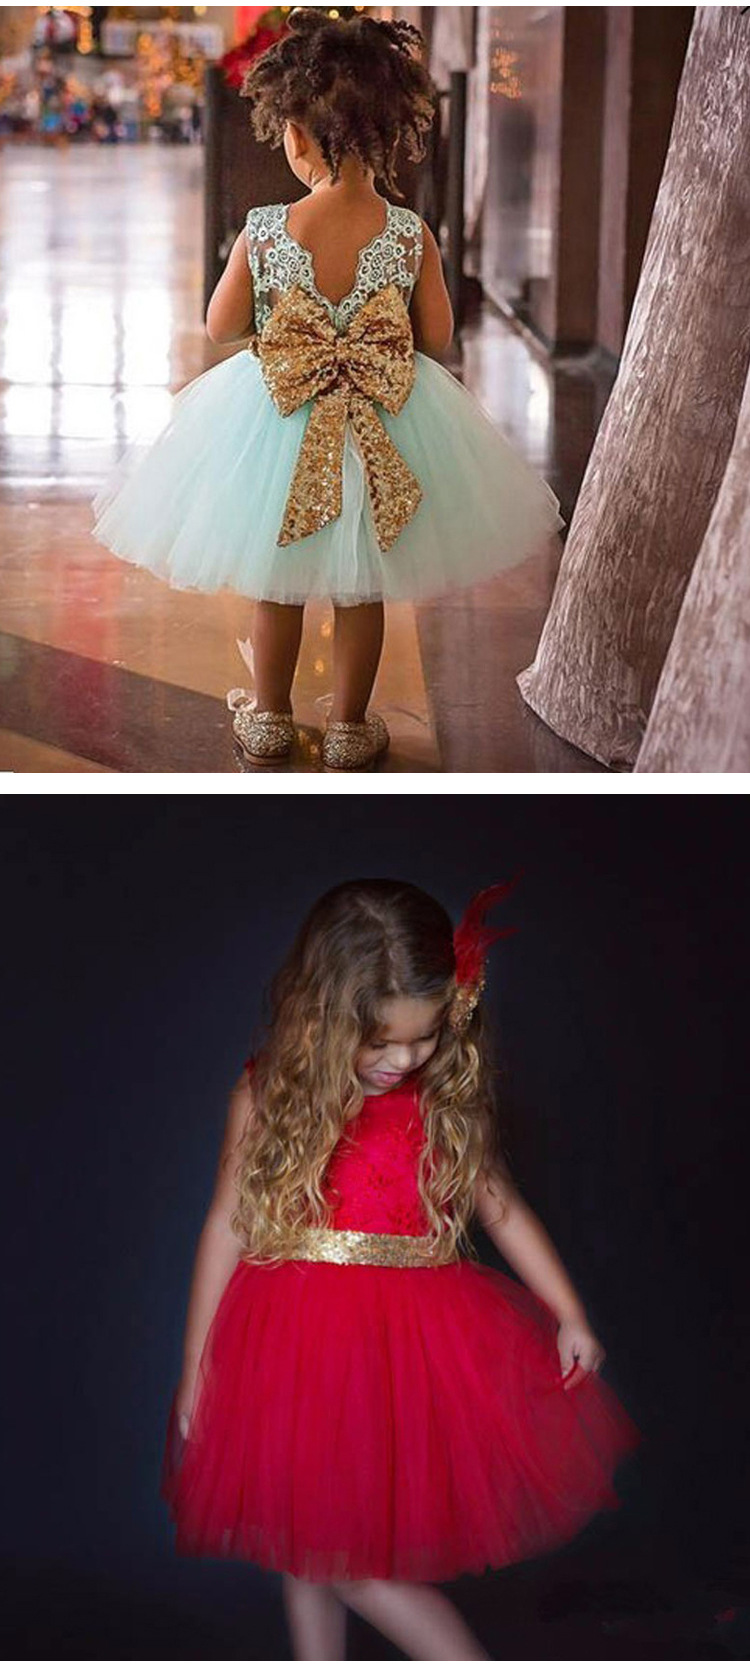 LZH Summer Baby Girls Dress Kids Sequins Bowknot Wedding Party Dresses Christmas Costume Girls Princess Dress For Girls Clothes 25